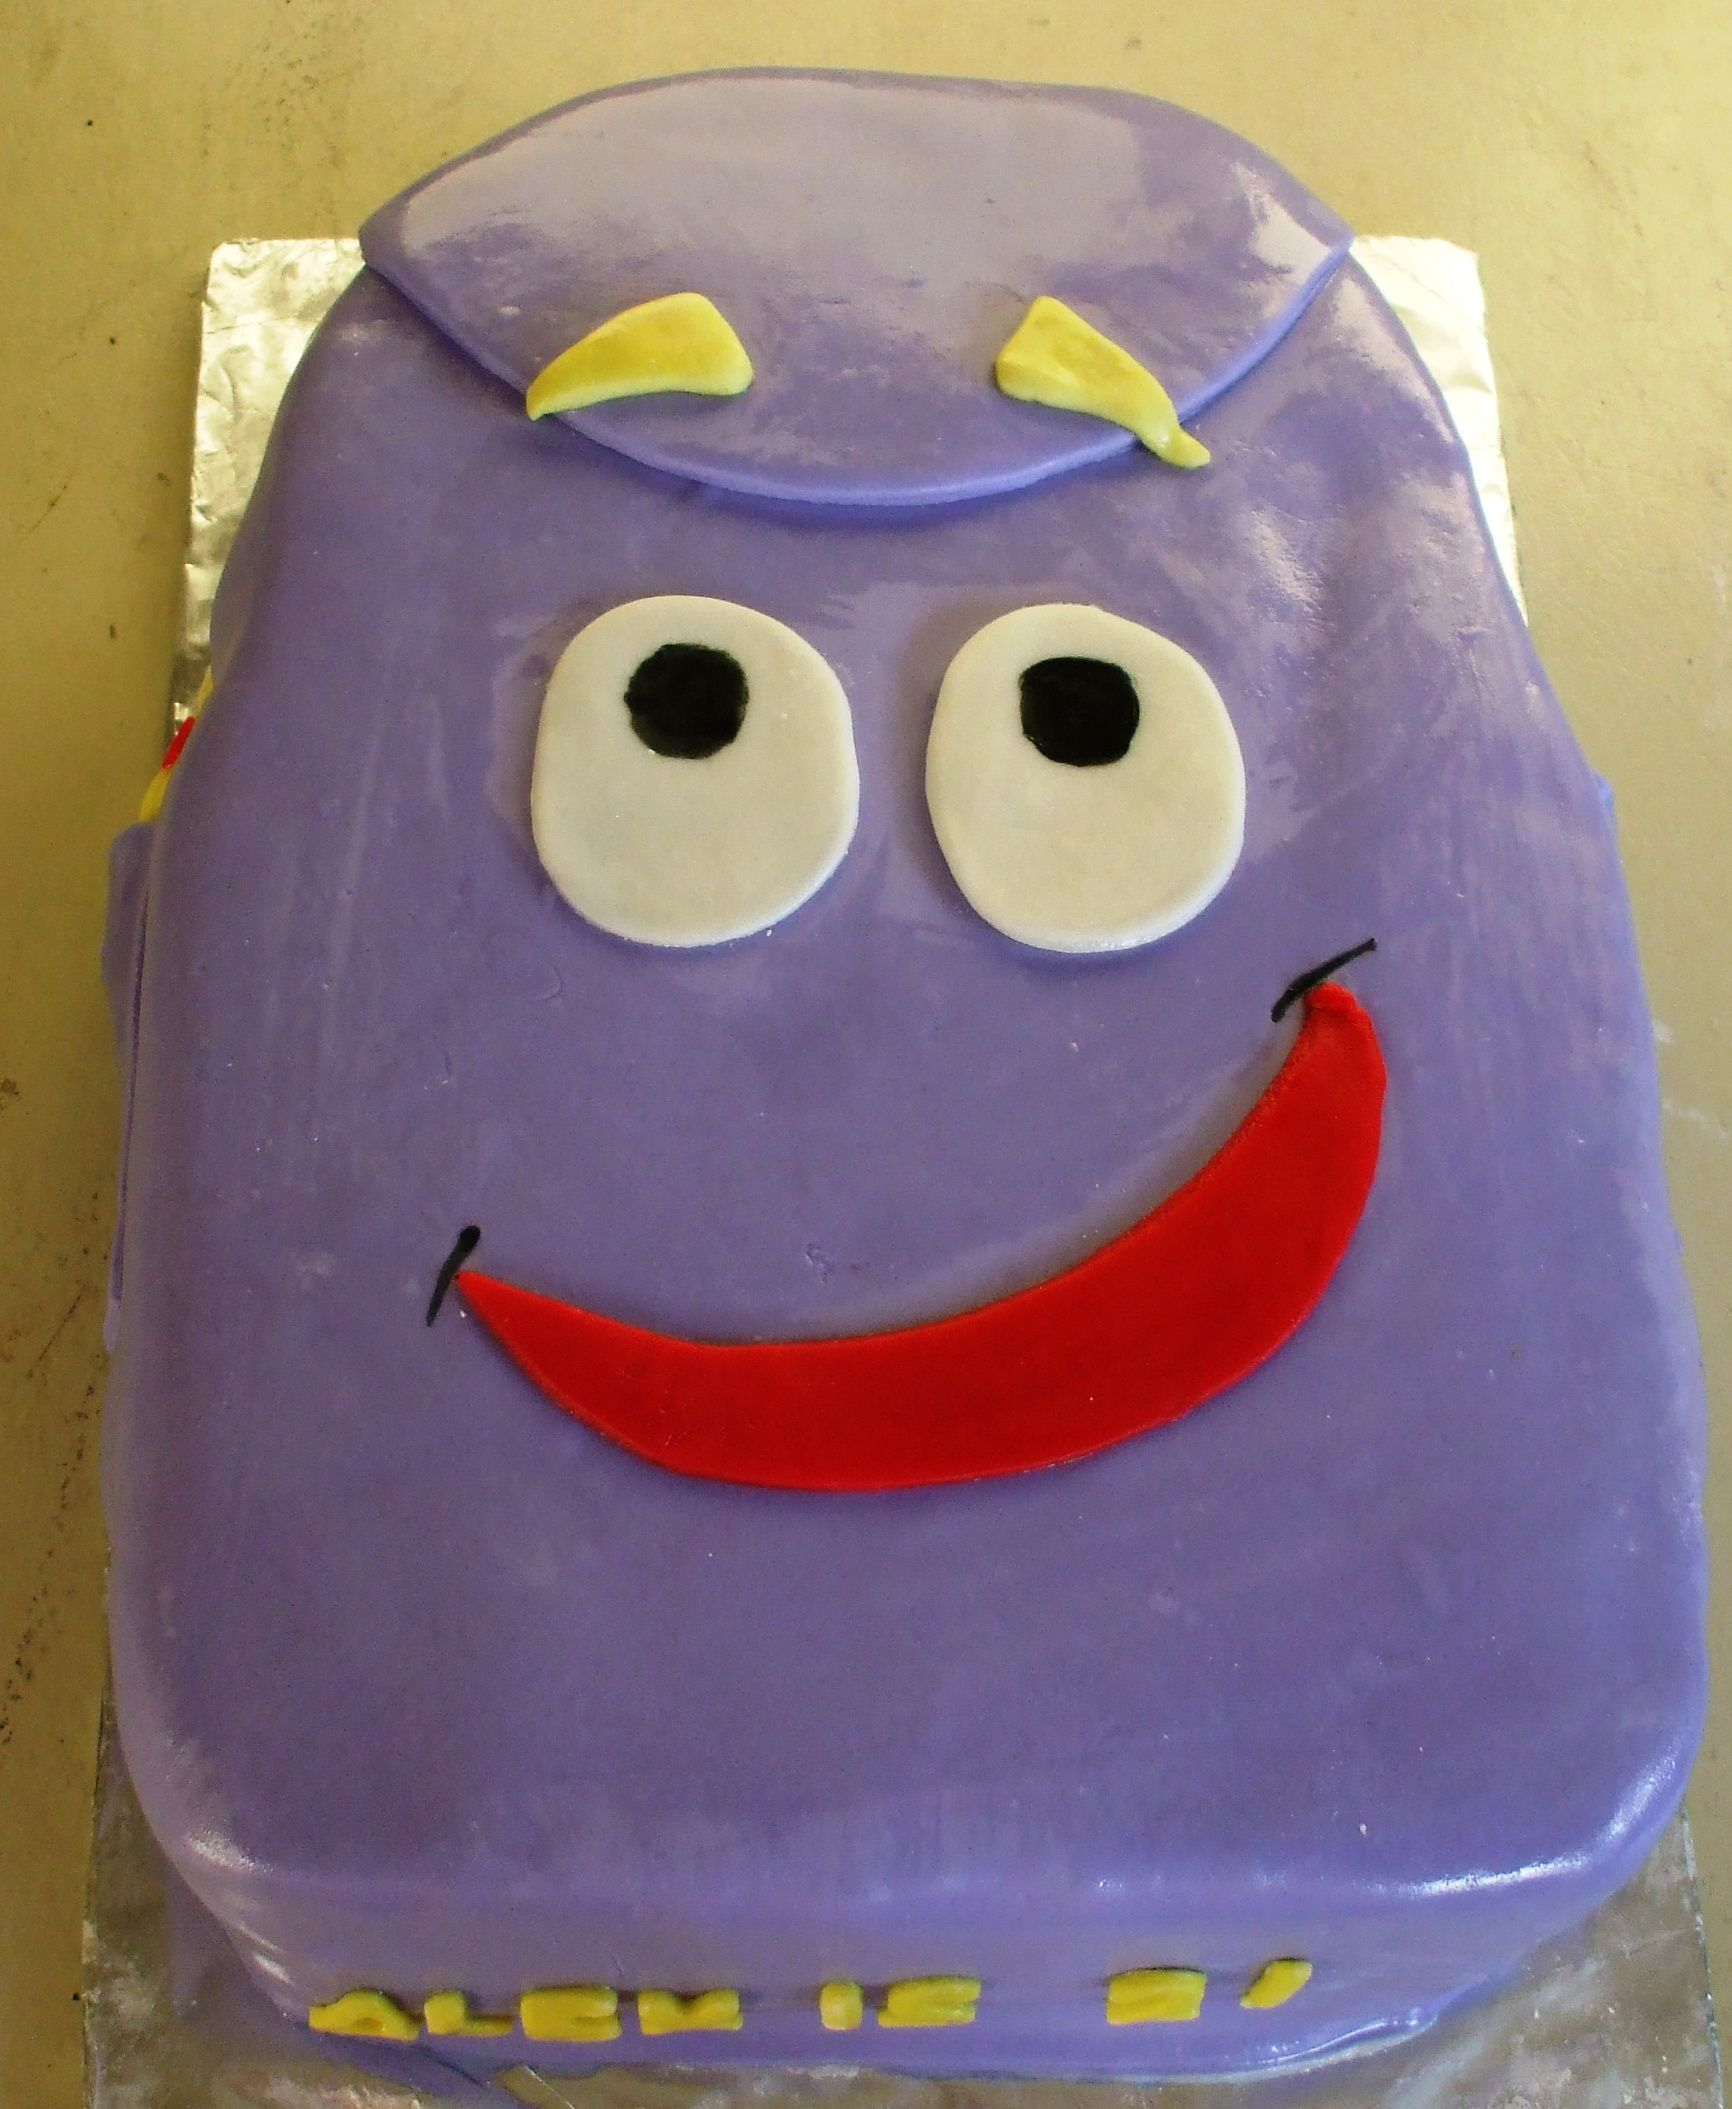 Dora's Backpack Cake | Party Planning in 2018 | Pinterest ...